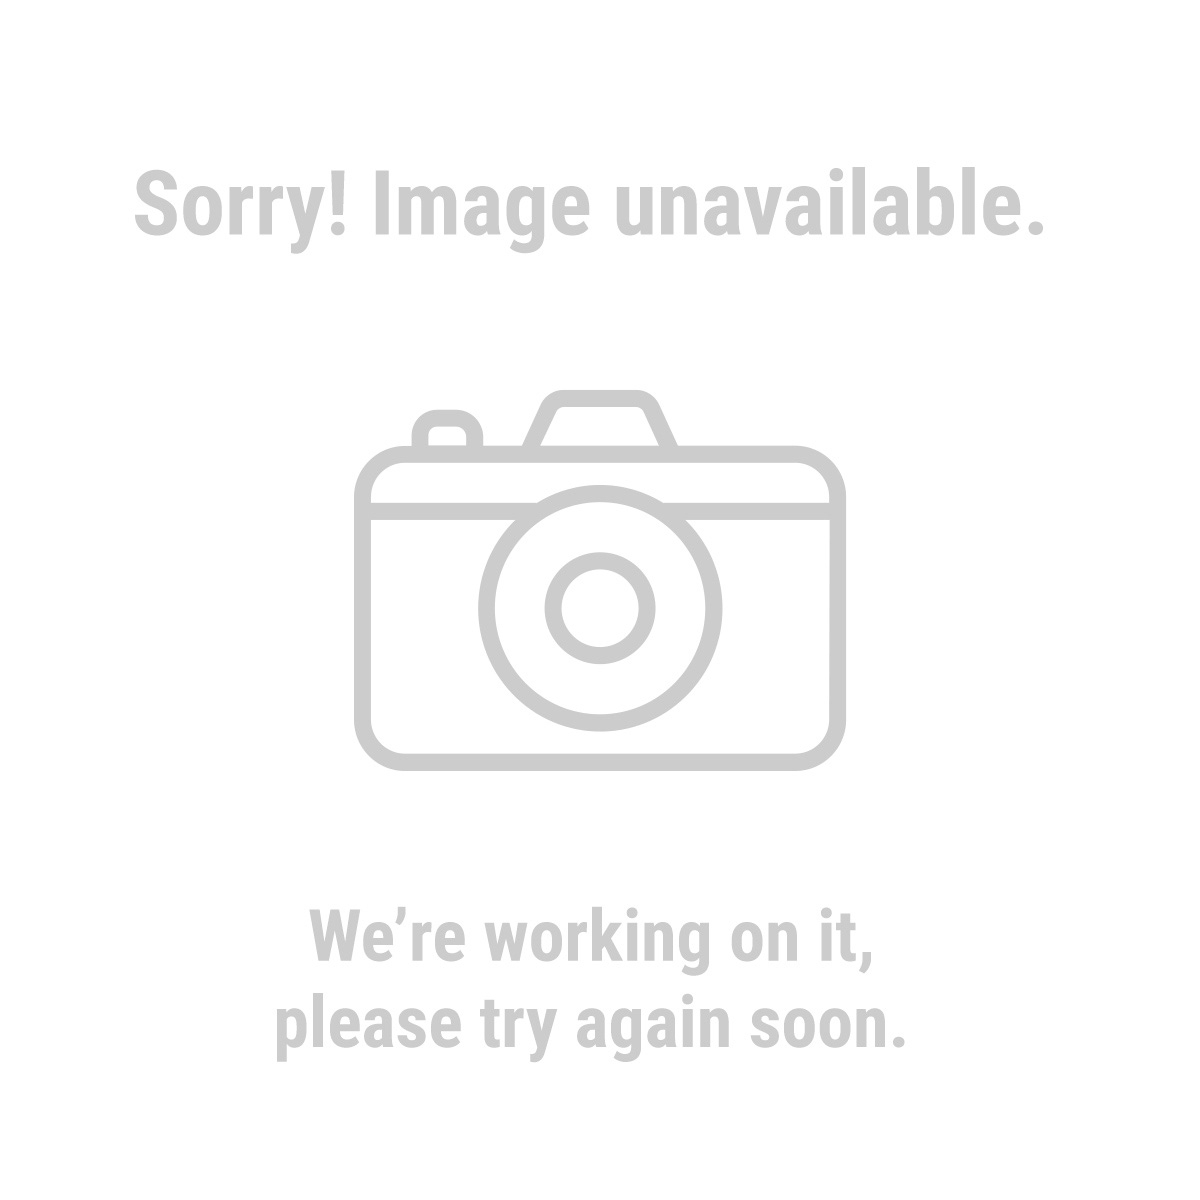 Central Pneumatic 69667 Portable Air Compressor, 2 Horsepower, 8 Gallon, 125 PSI